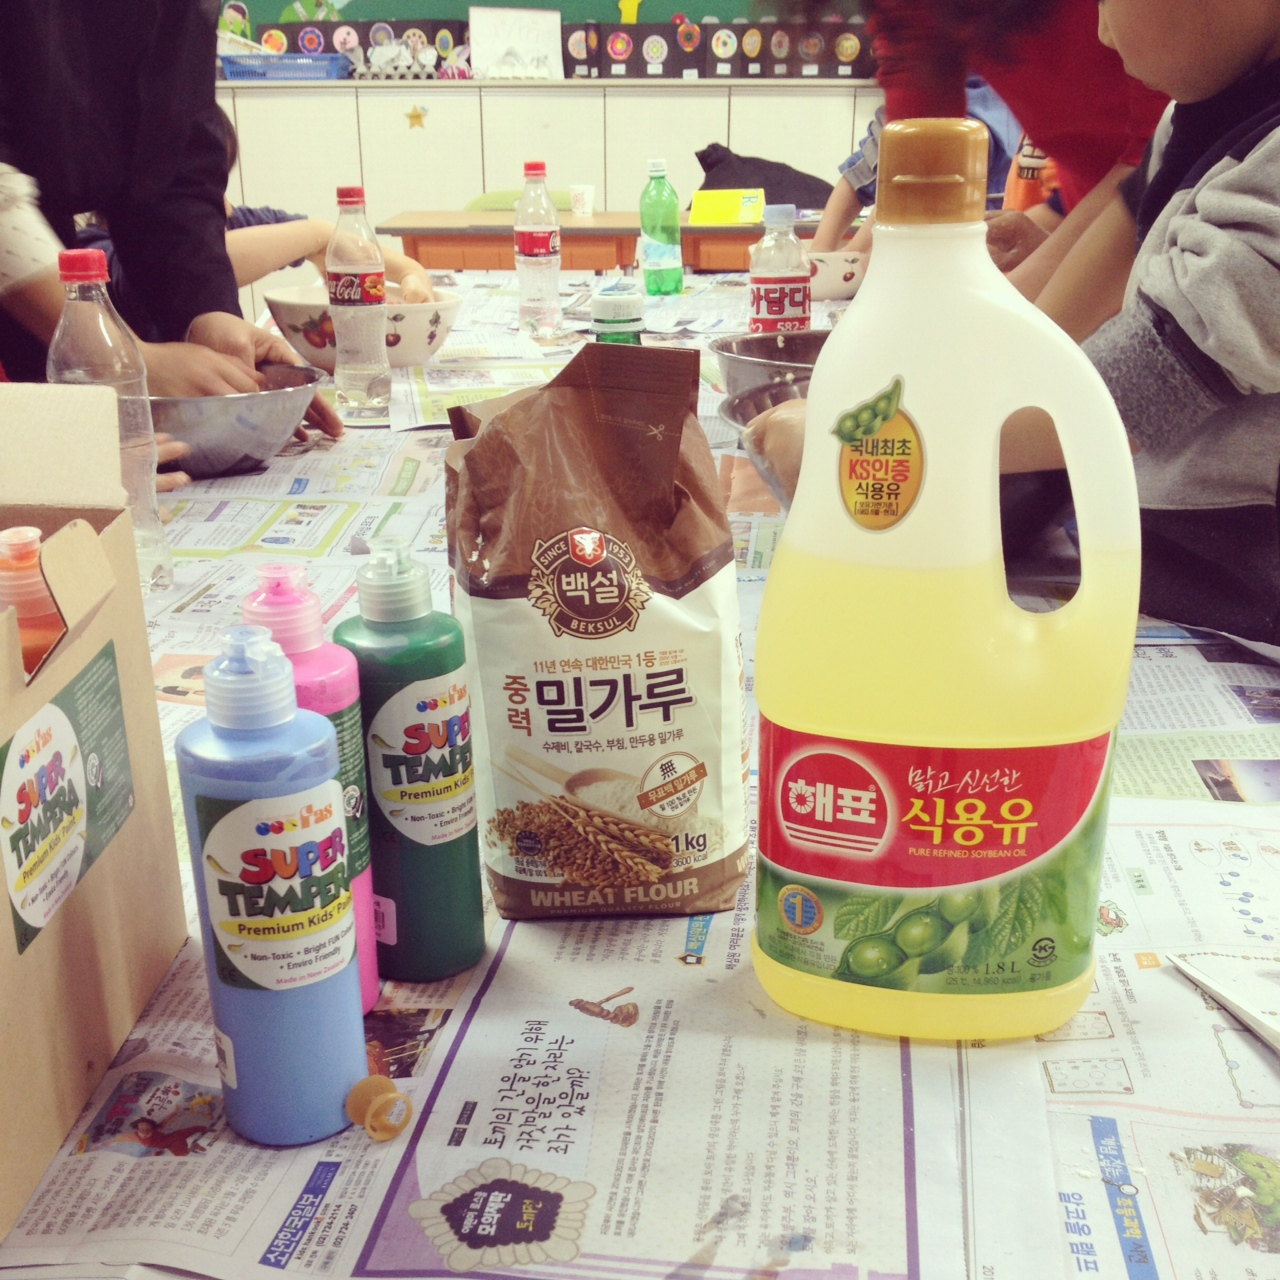 Here is a photograph of most of the ingredients with their Korean branding (except salt which my teachers found in the Science calssroom).